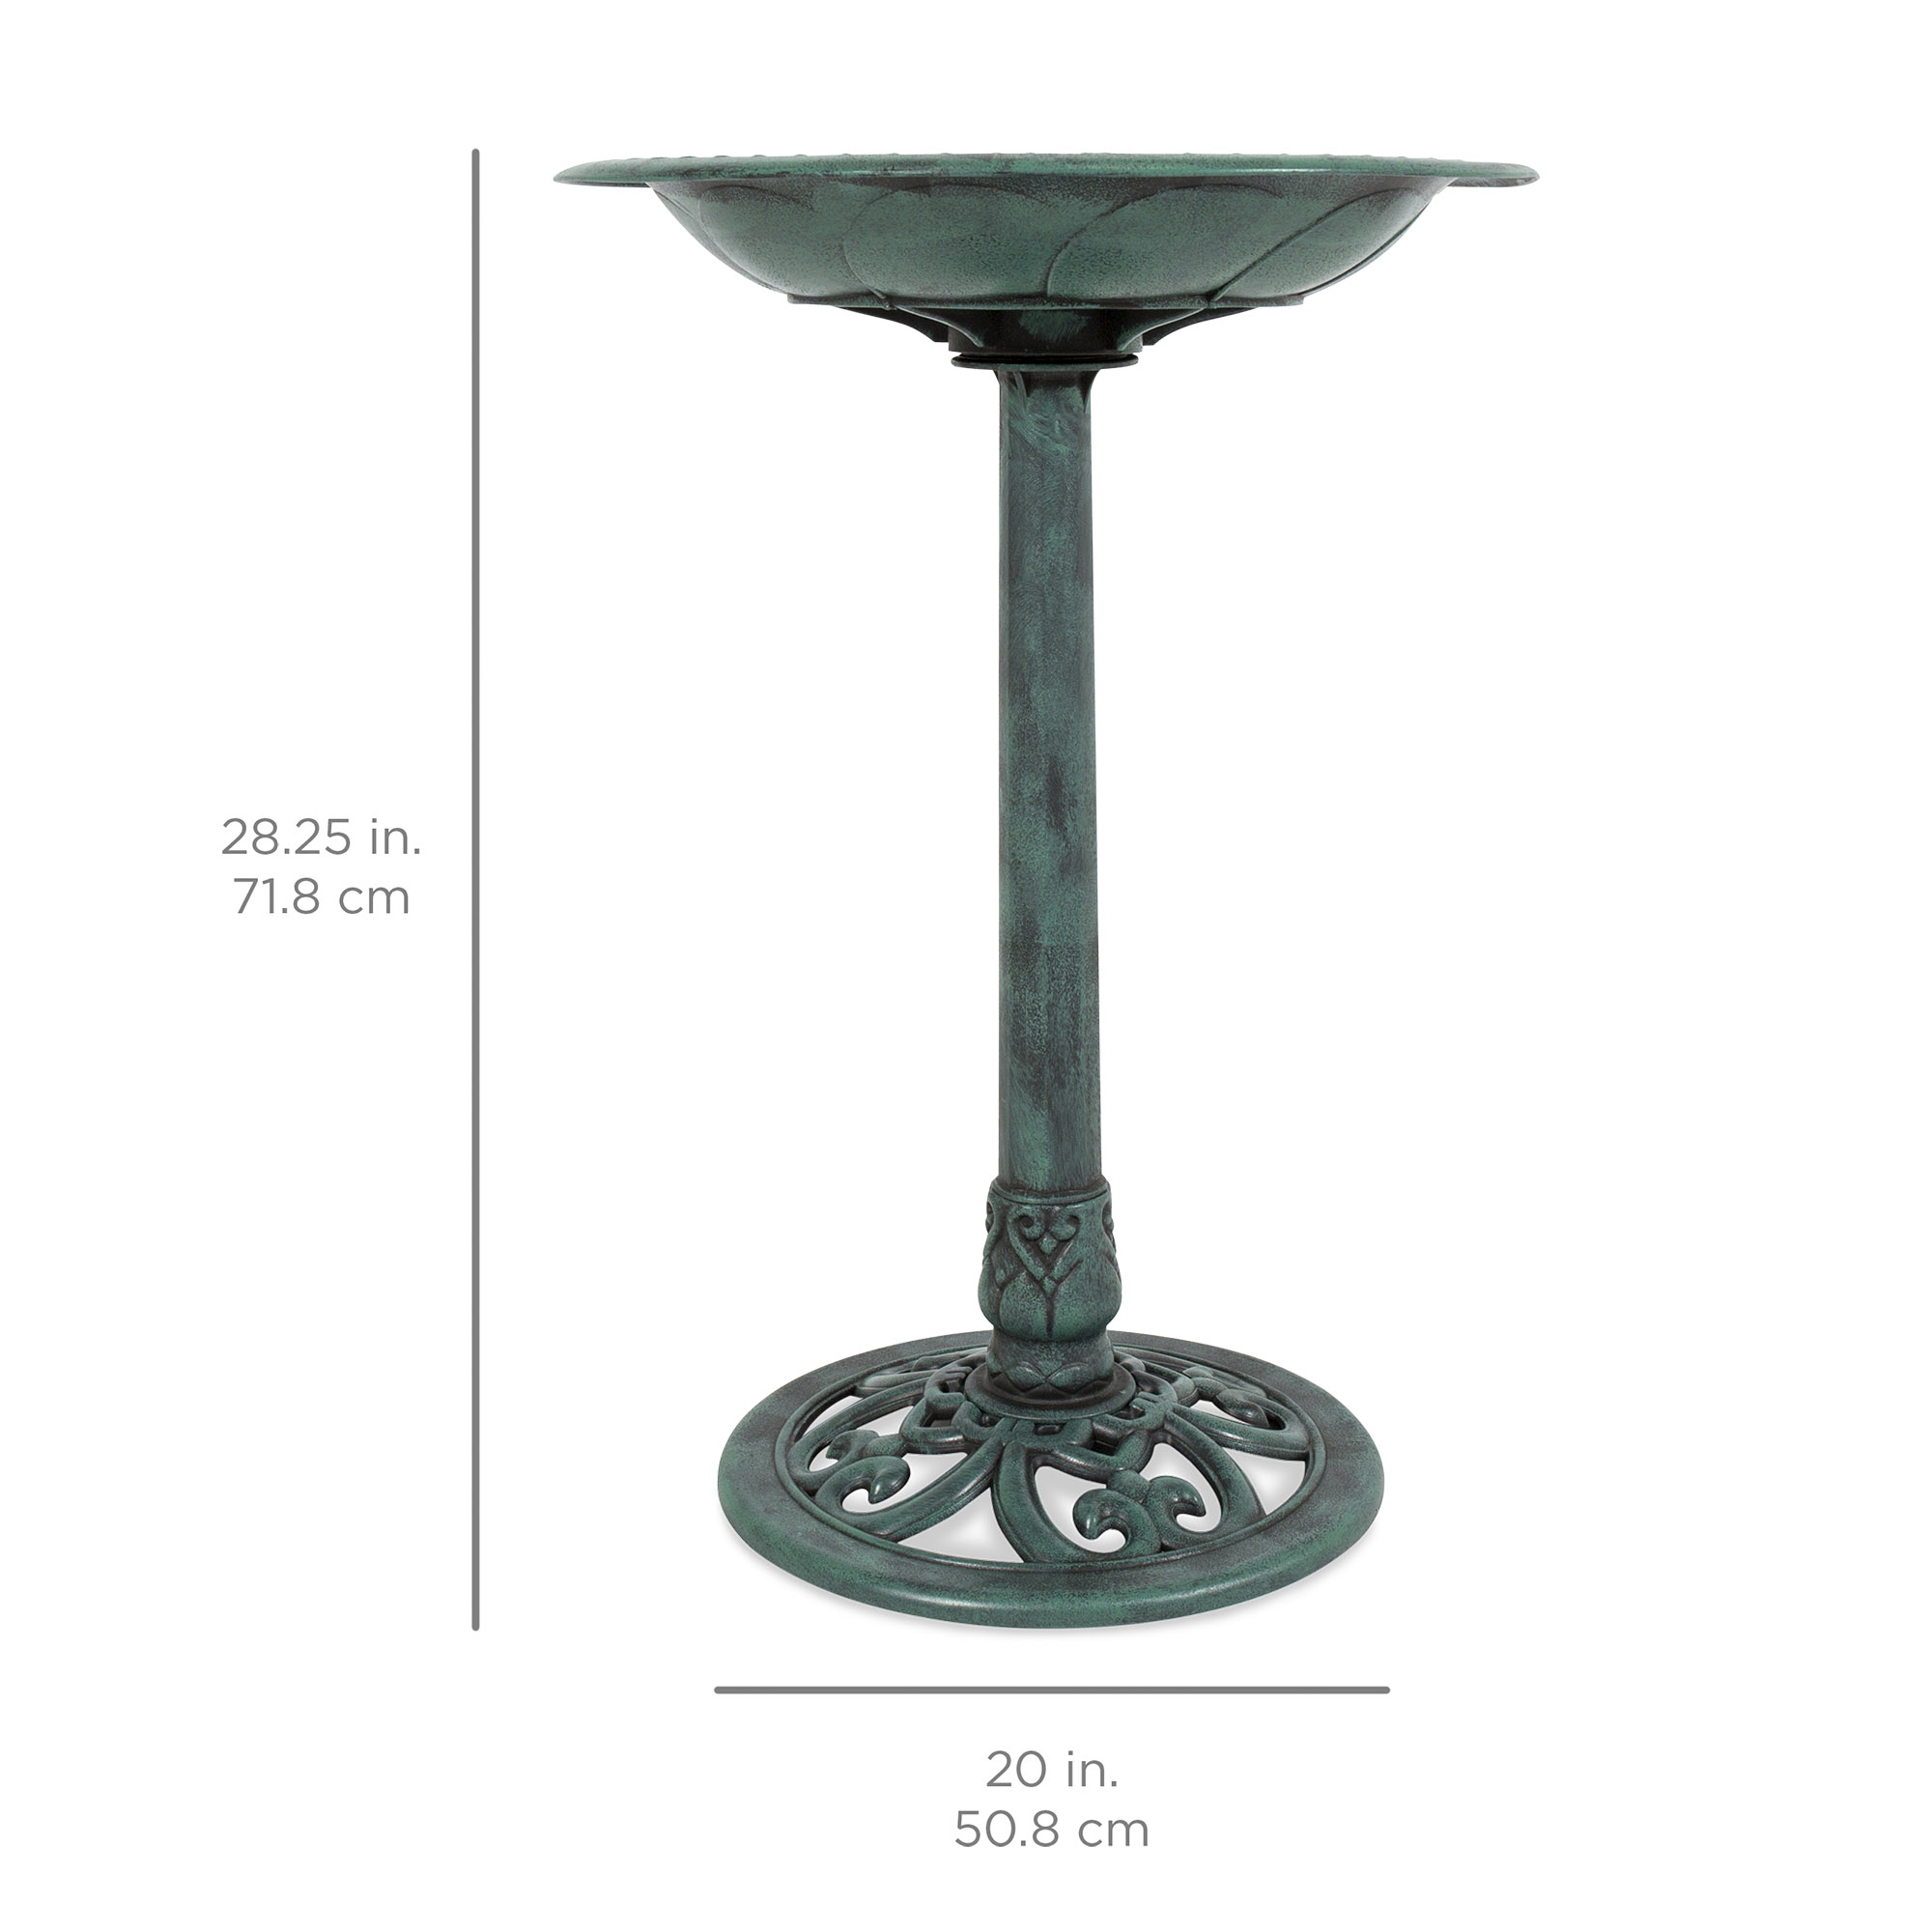 bestchoiceproducts best choice products outdoor vintage pedestal umbrella accent table bird bath decoration for garden yard painted tables industrial couch brass leg coffee high